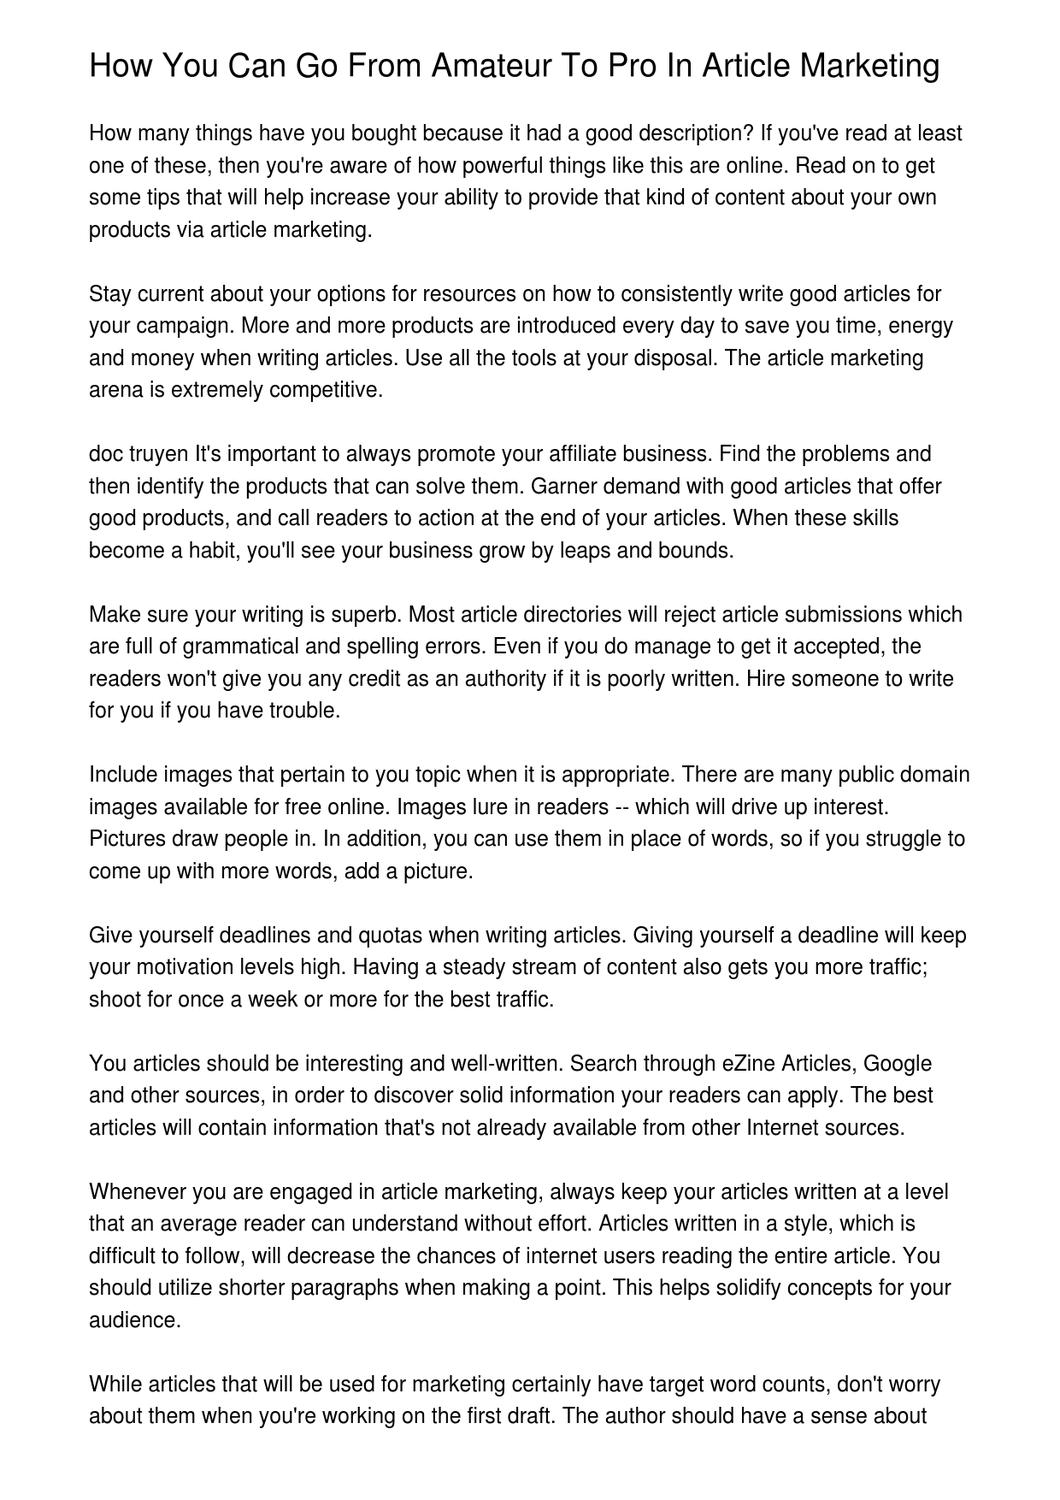 How You Can Go From Amateur To Pro In Article Marketing by Bor Espersen -  issuu